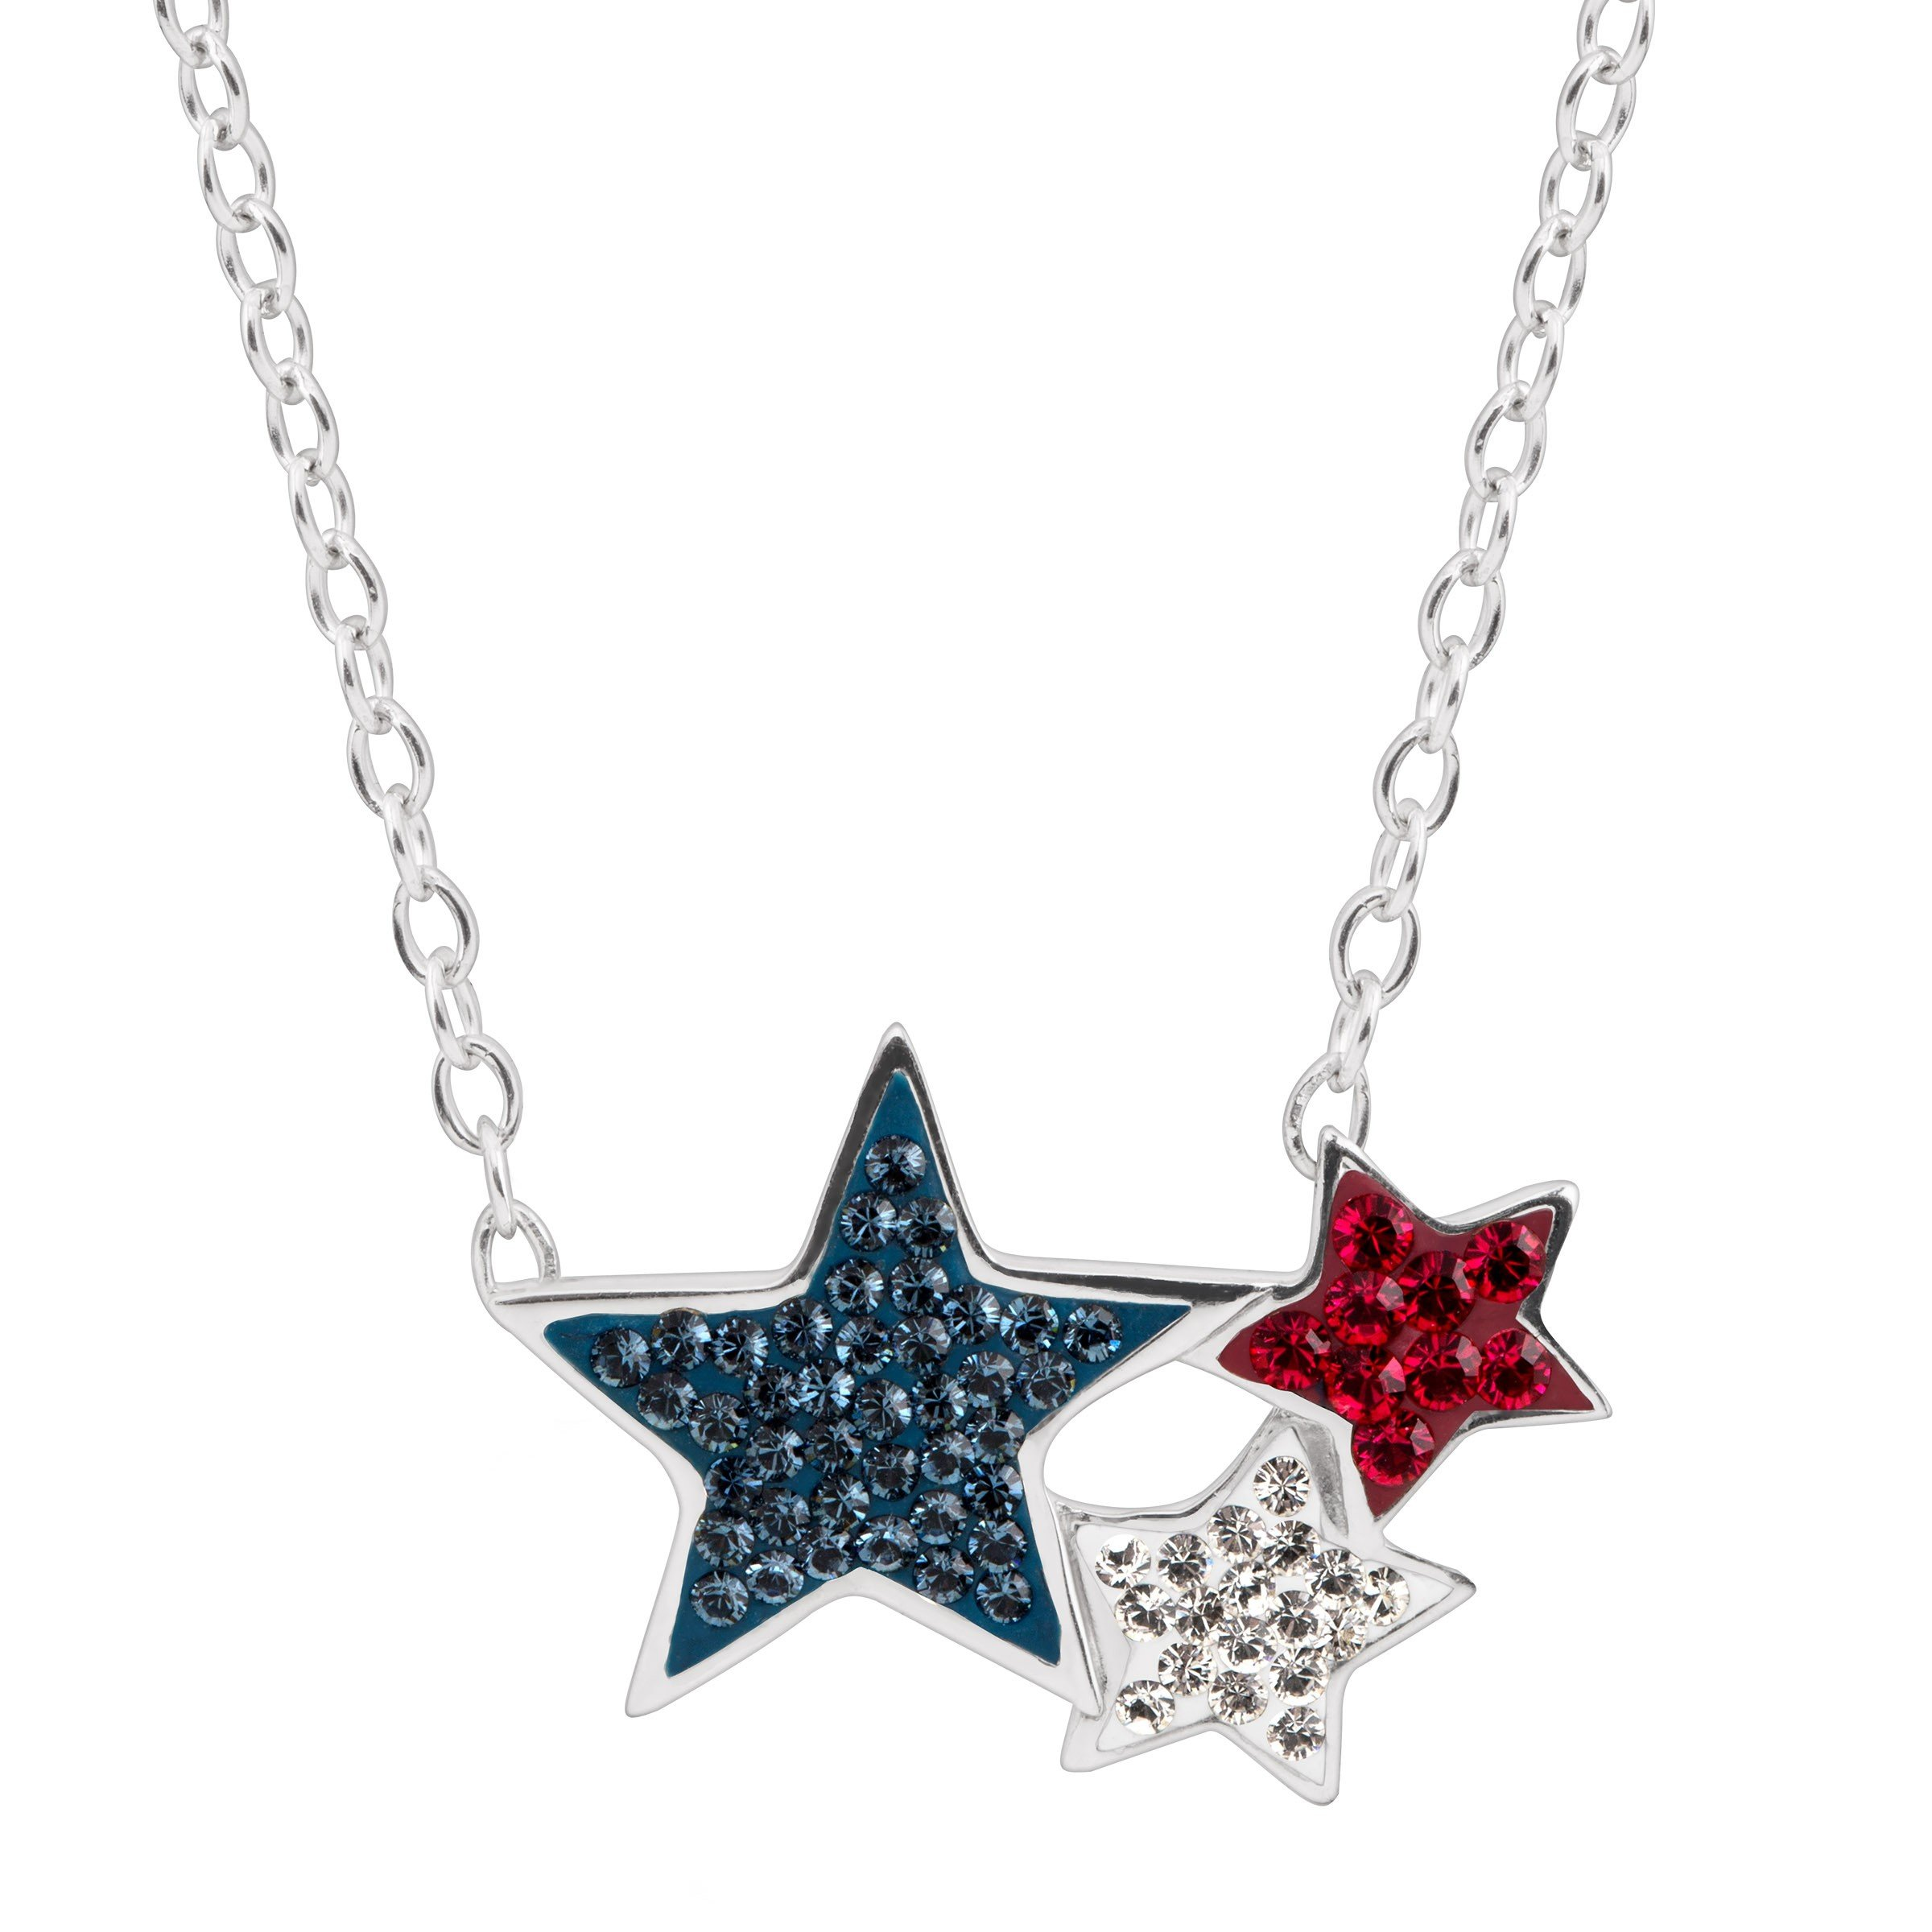 Crystaluxe Red, White, Blue Triple-Star Necklace with Swarovski Crystals in Sterling Silver